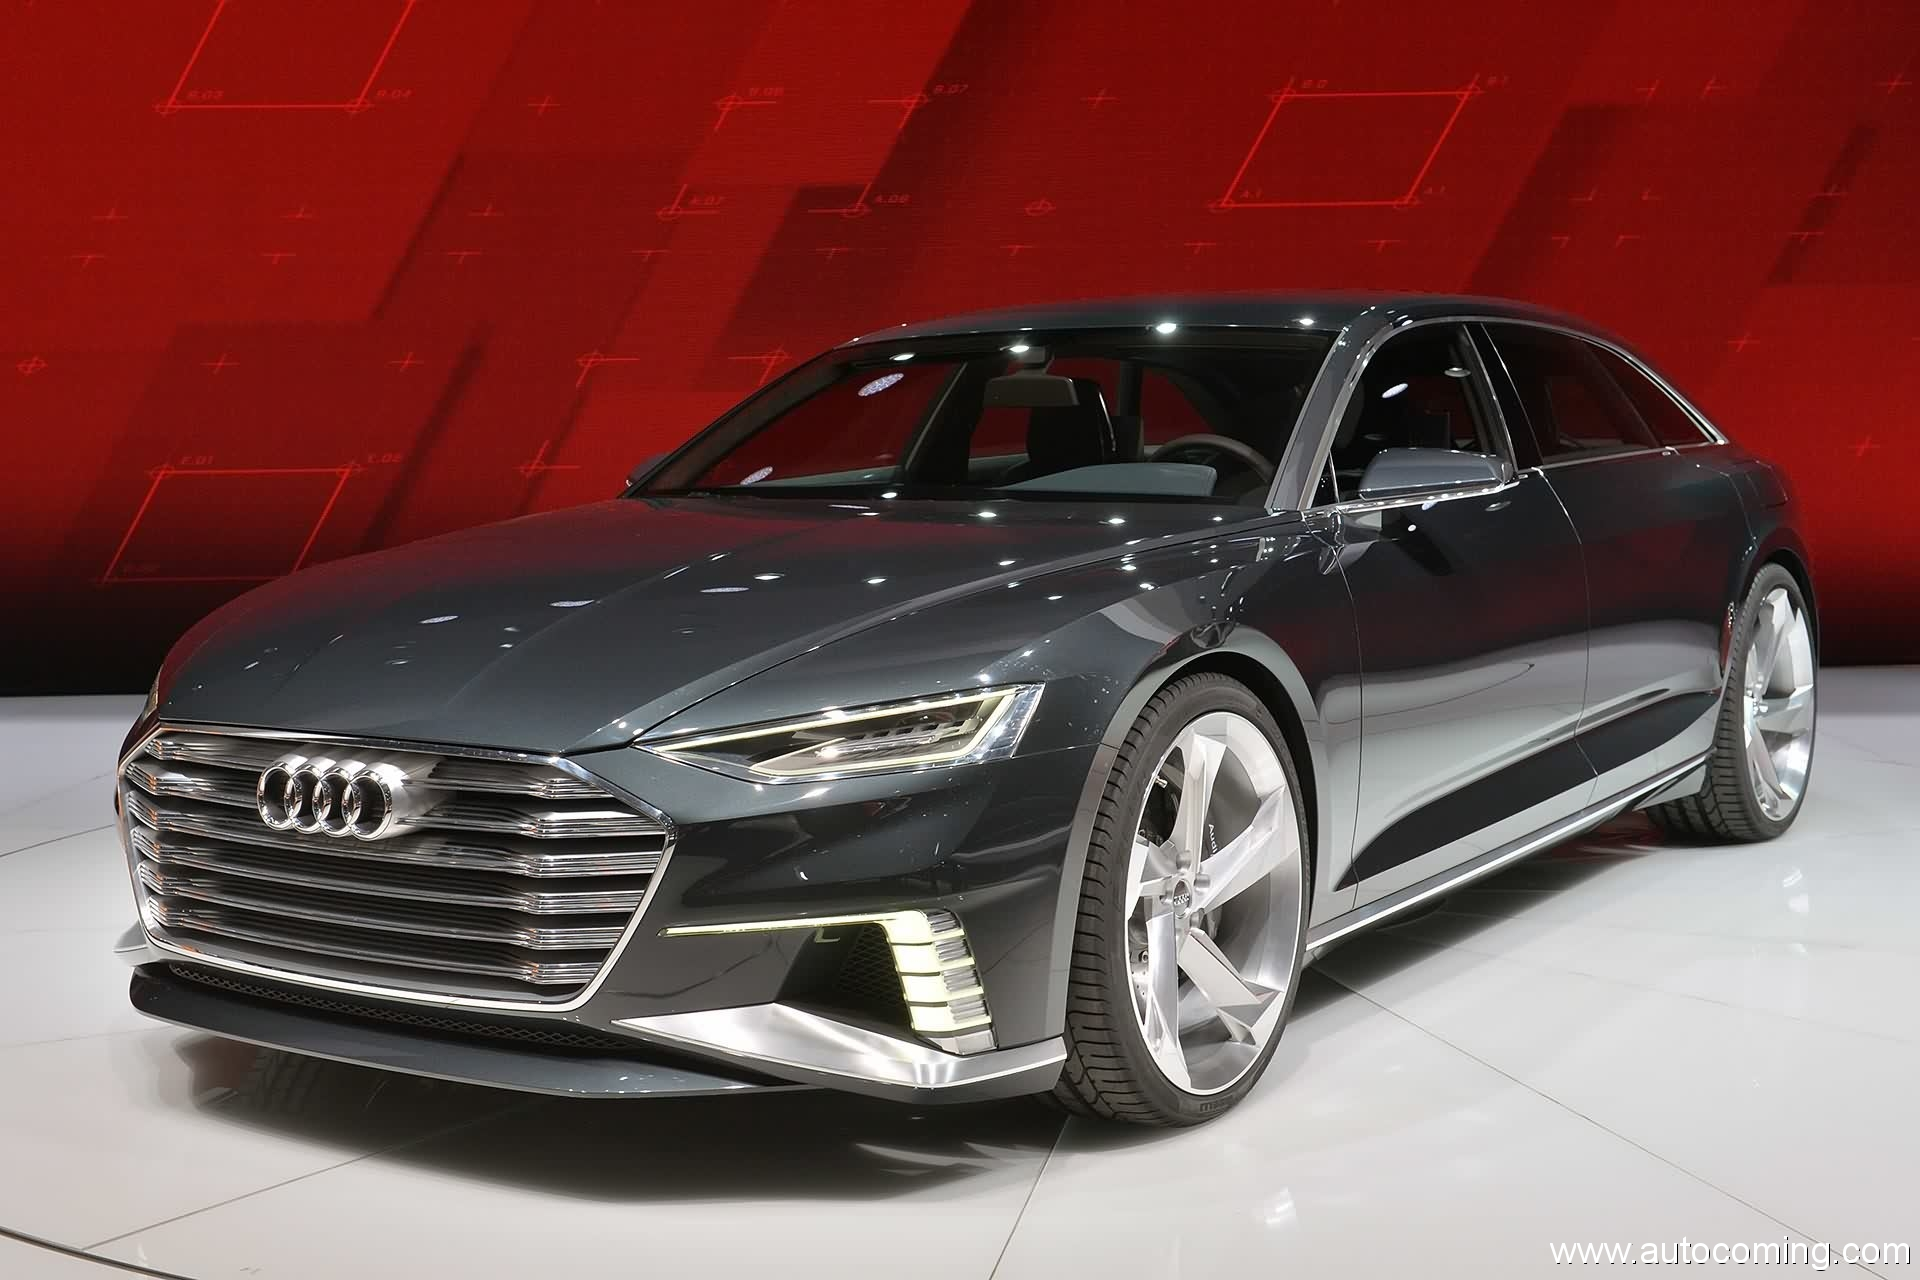 2017 Audi Prologue Avant Concept photo - 2